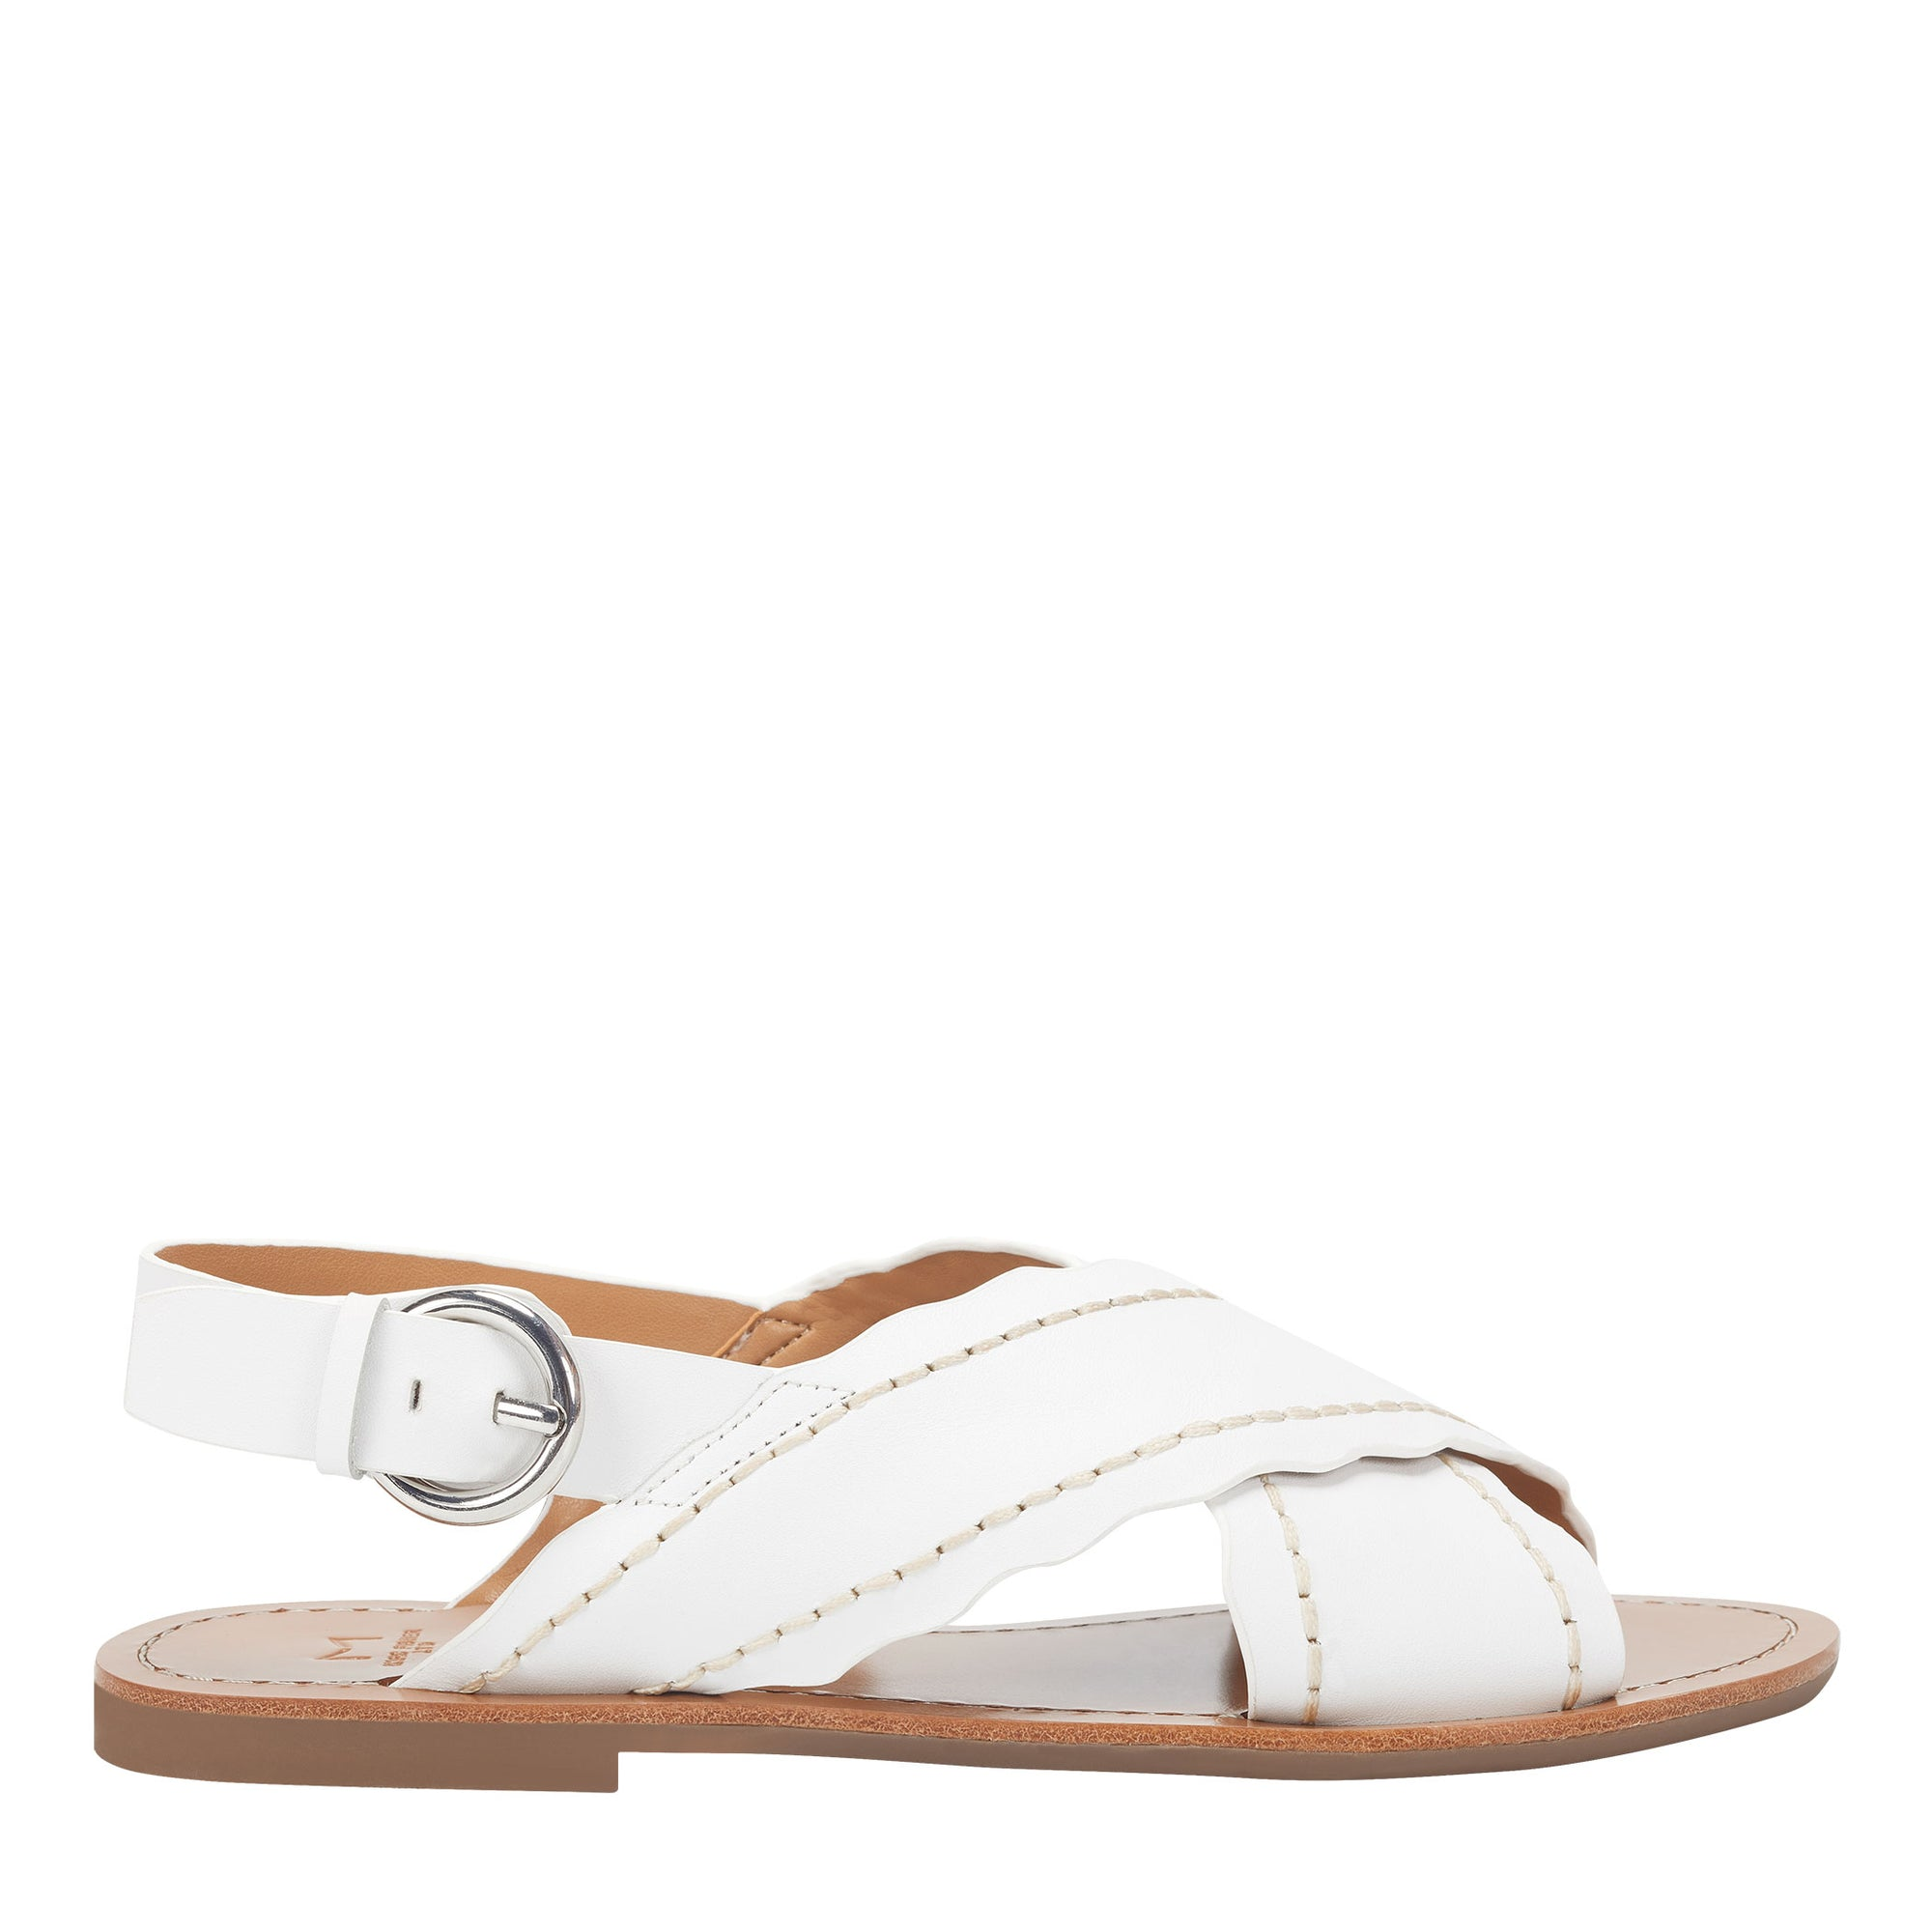 renny-flat-sandal-in-white-leather